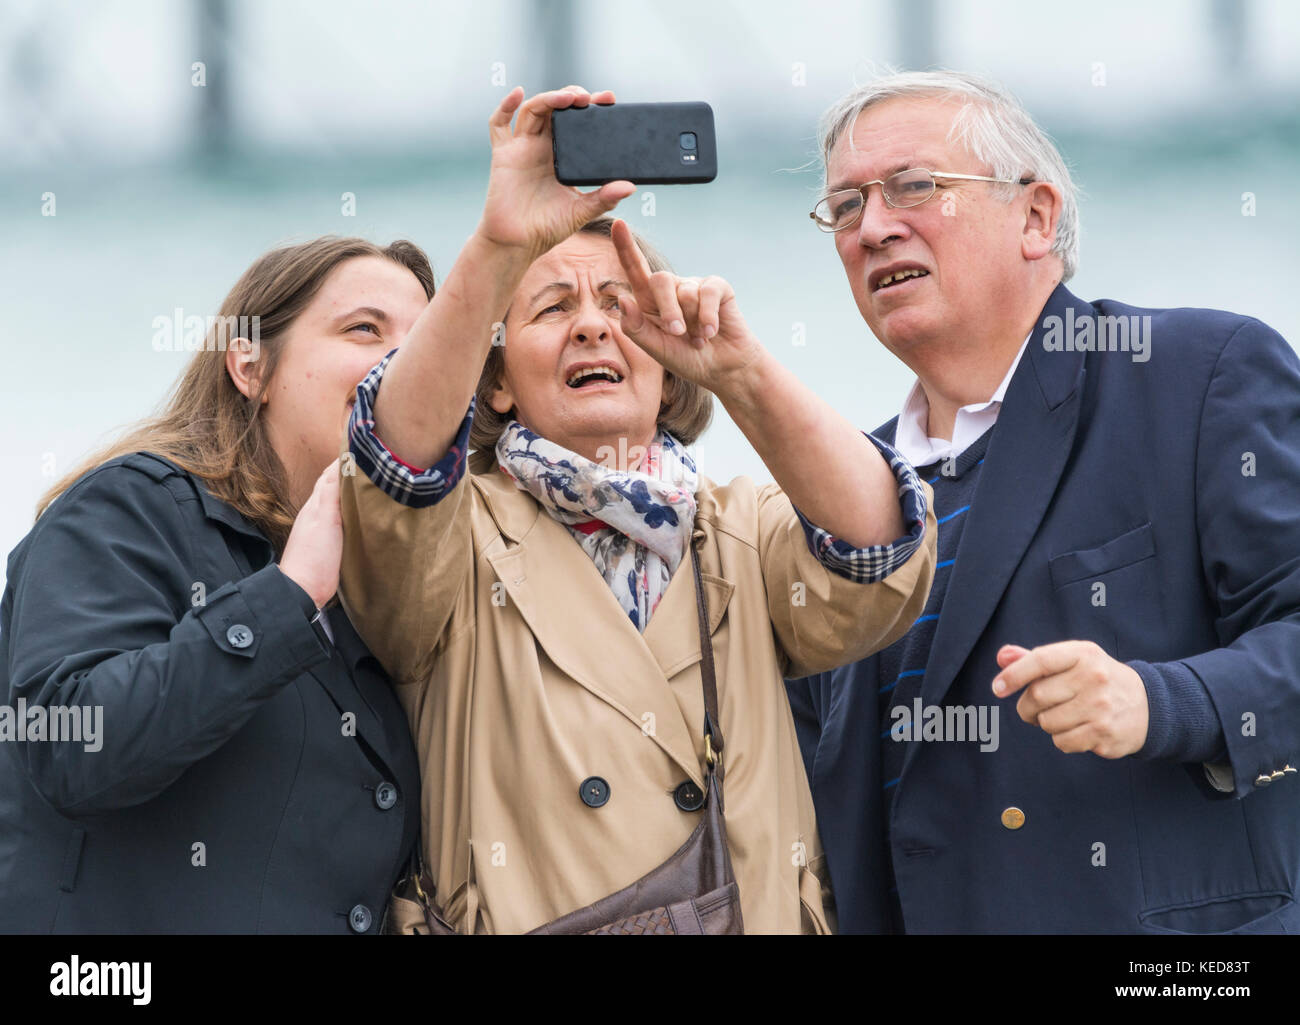 Elderly people struggling with technology while trying to take a family selfie. - Stock Image